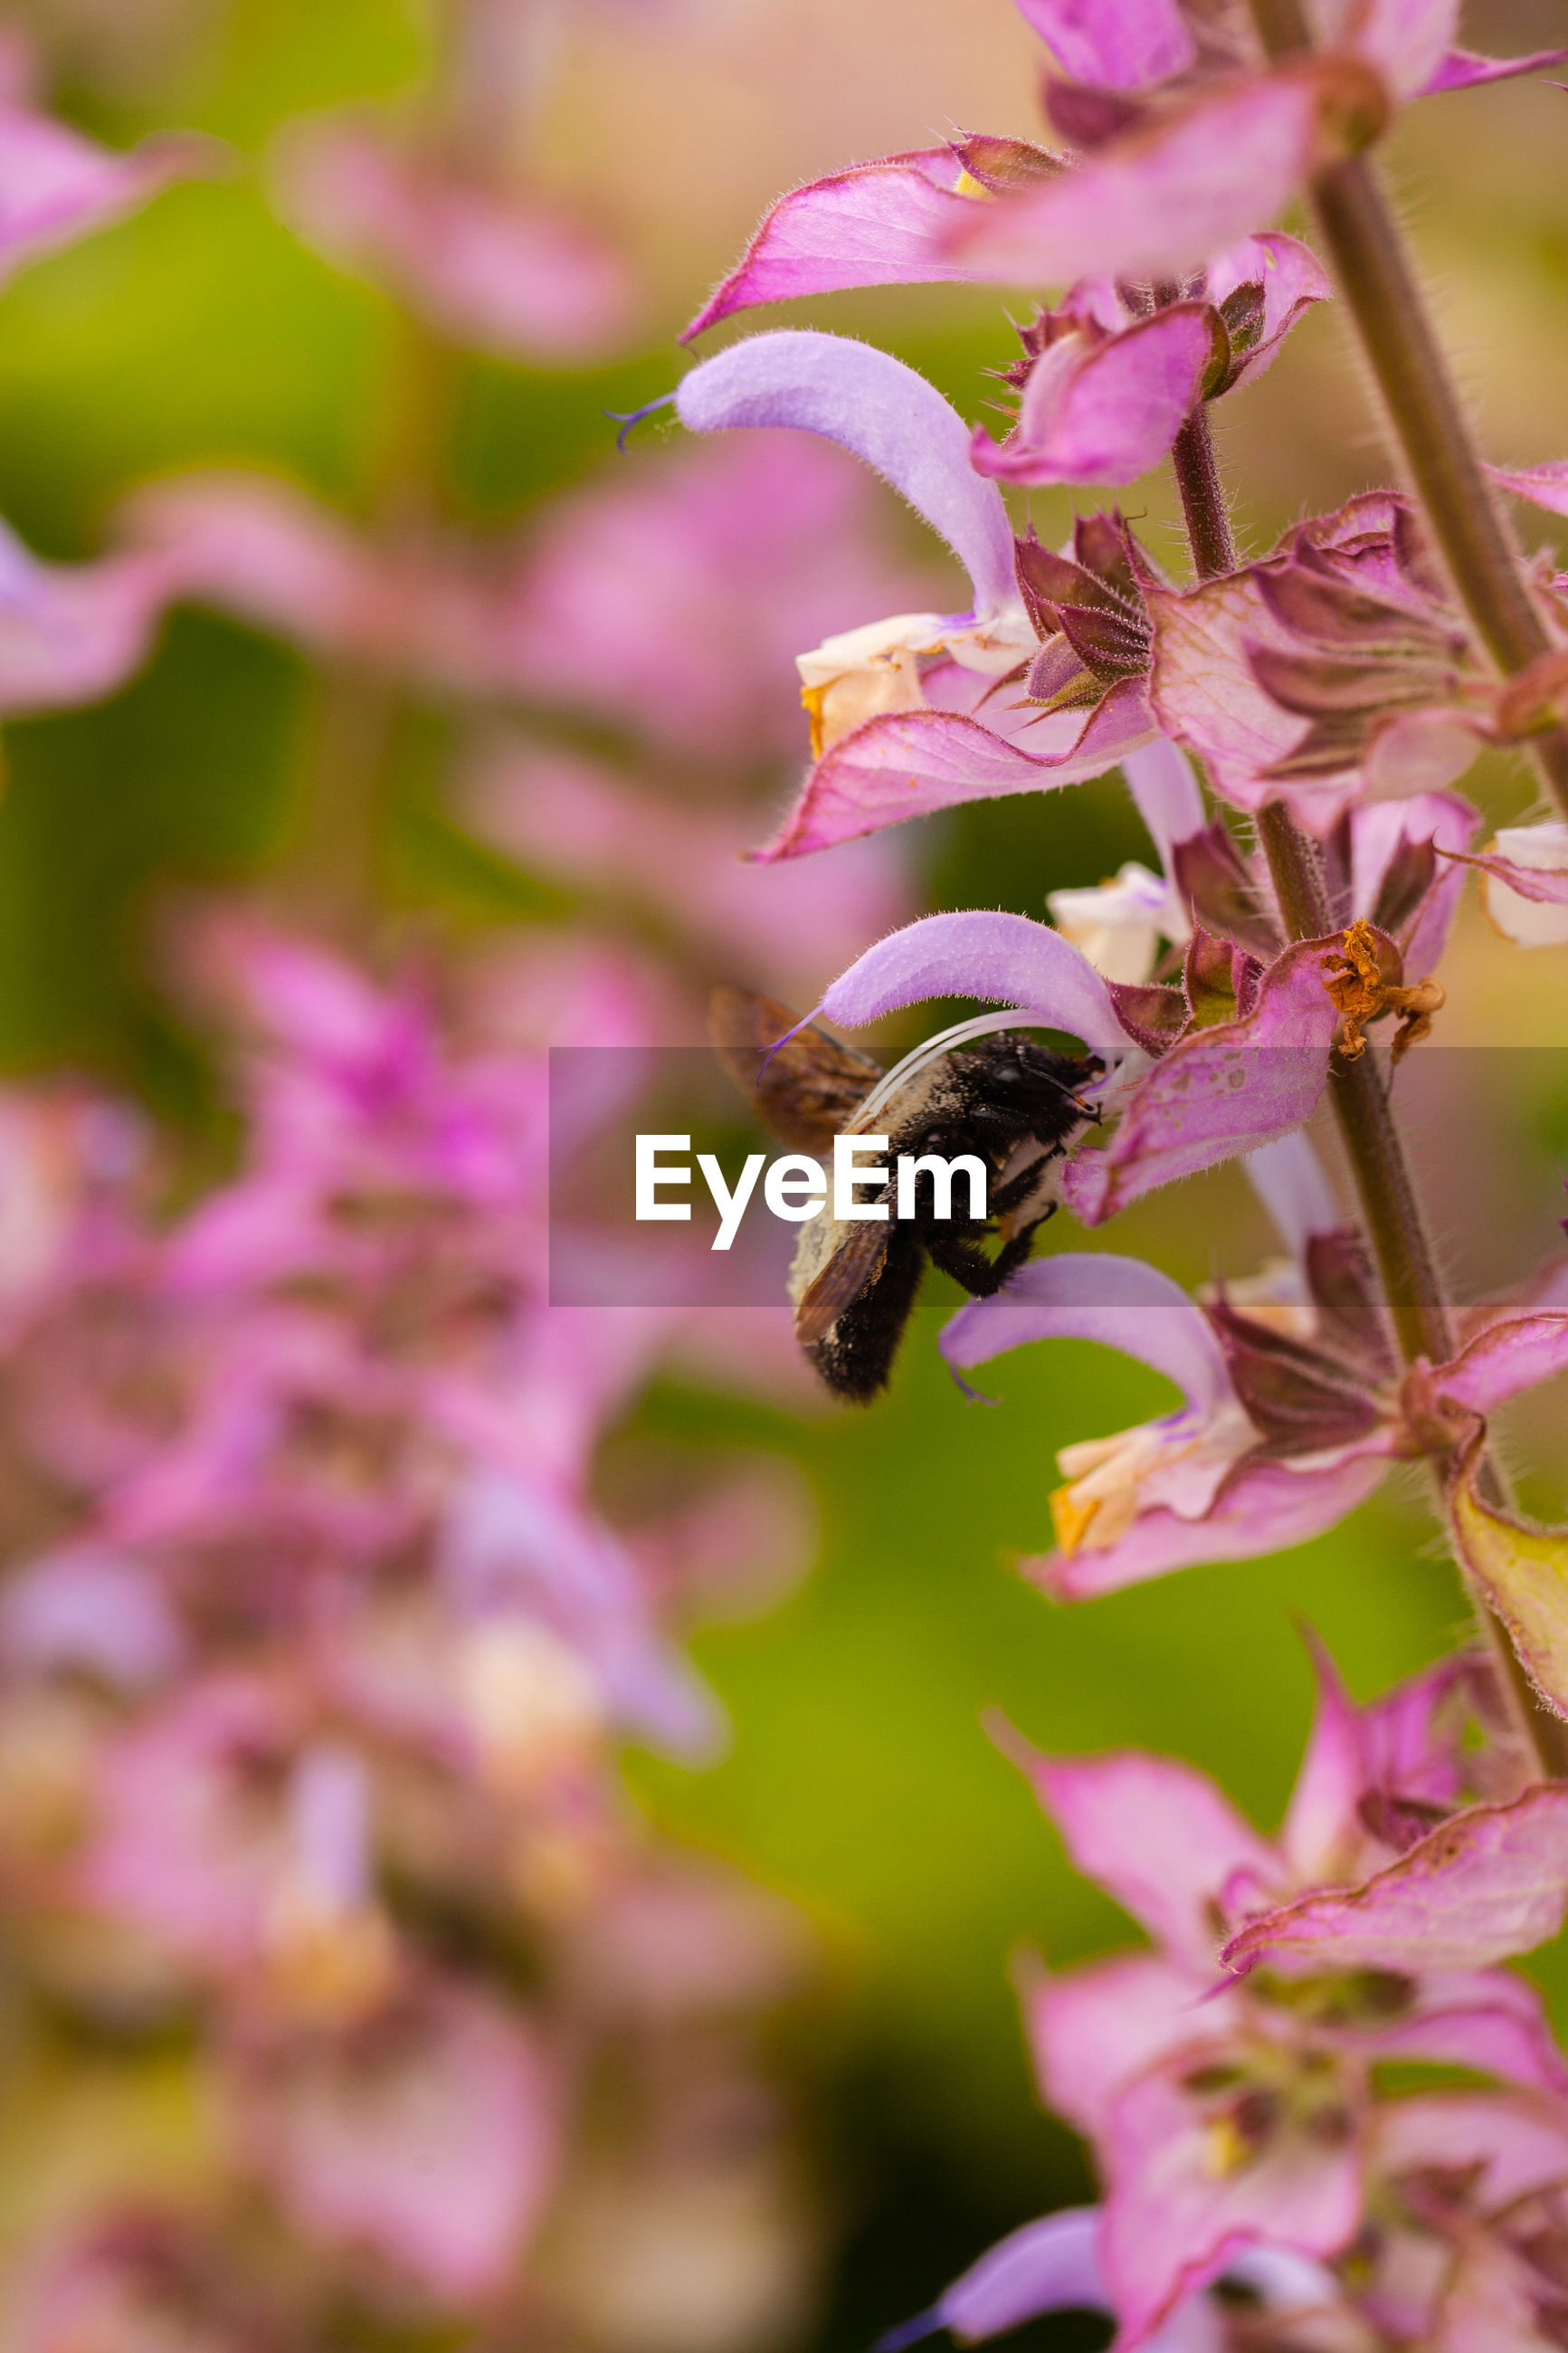 flowering plant, flower, invertebrate, one animal, animal themes, plant, animals in the wild, insect, fragility, beauty in nature, animal wildlife, animal, vulnerability, close-up, freshness, growth, bee, petal, nature, selective focus, flower head, pollination, no people, purple, outdoors